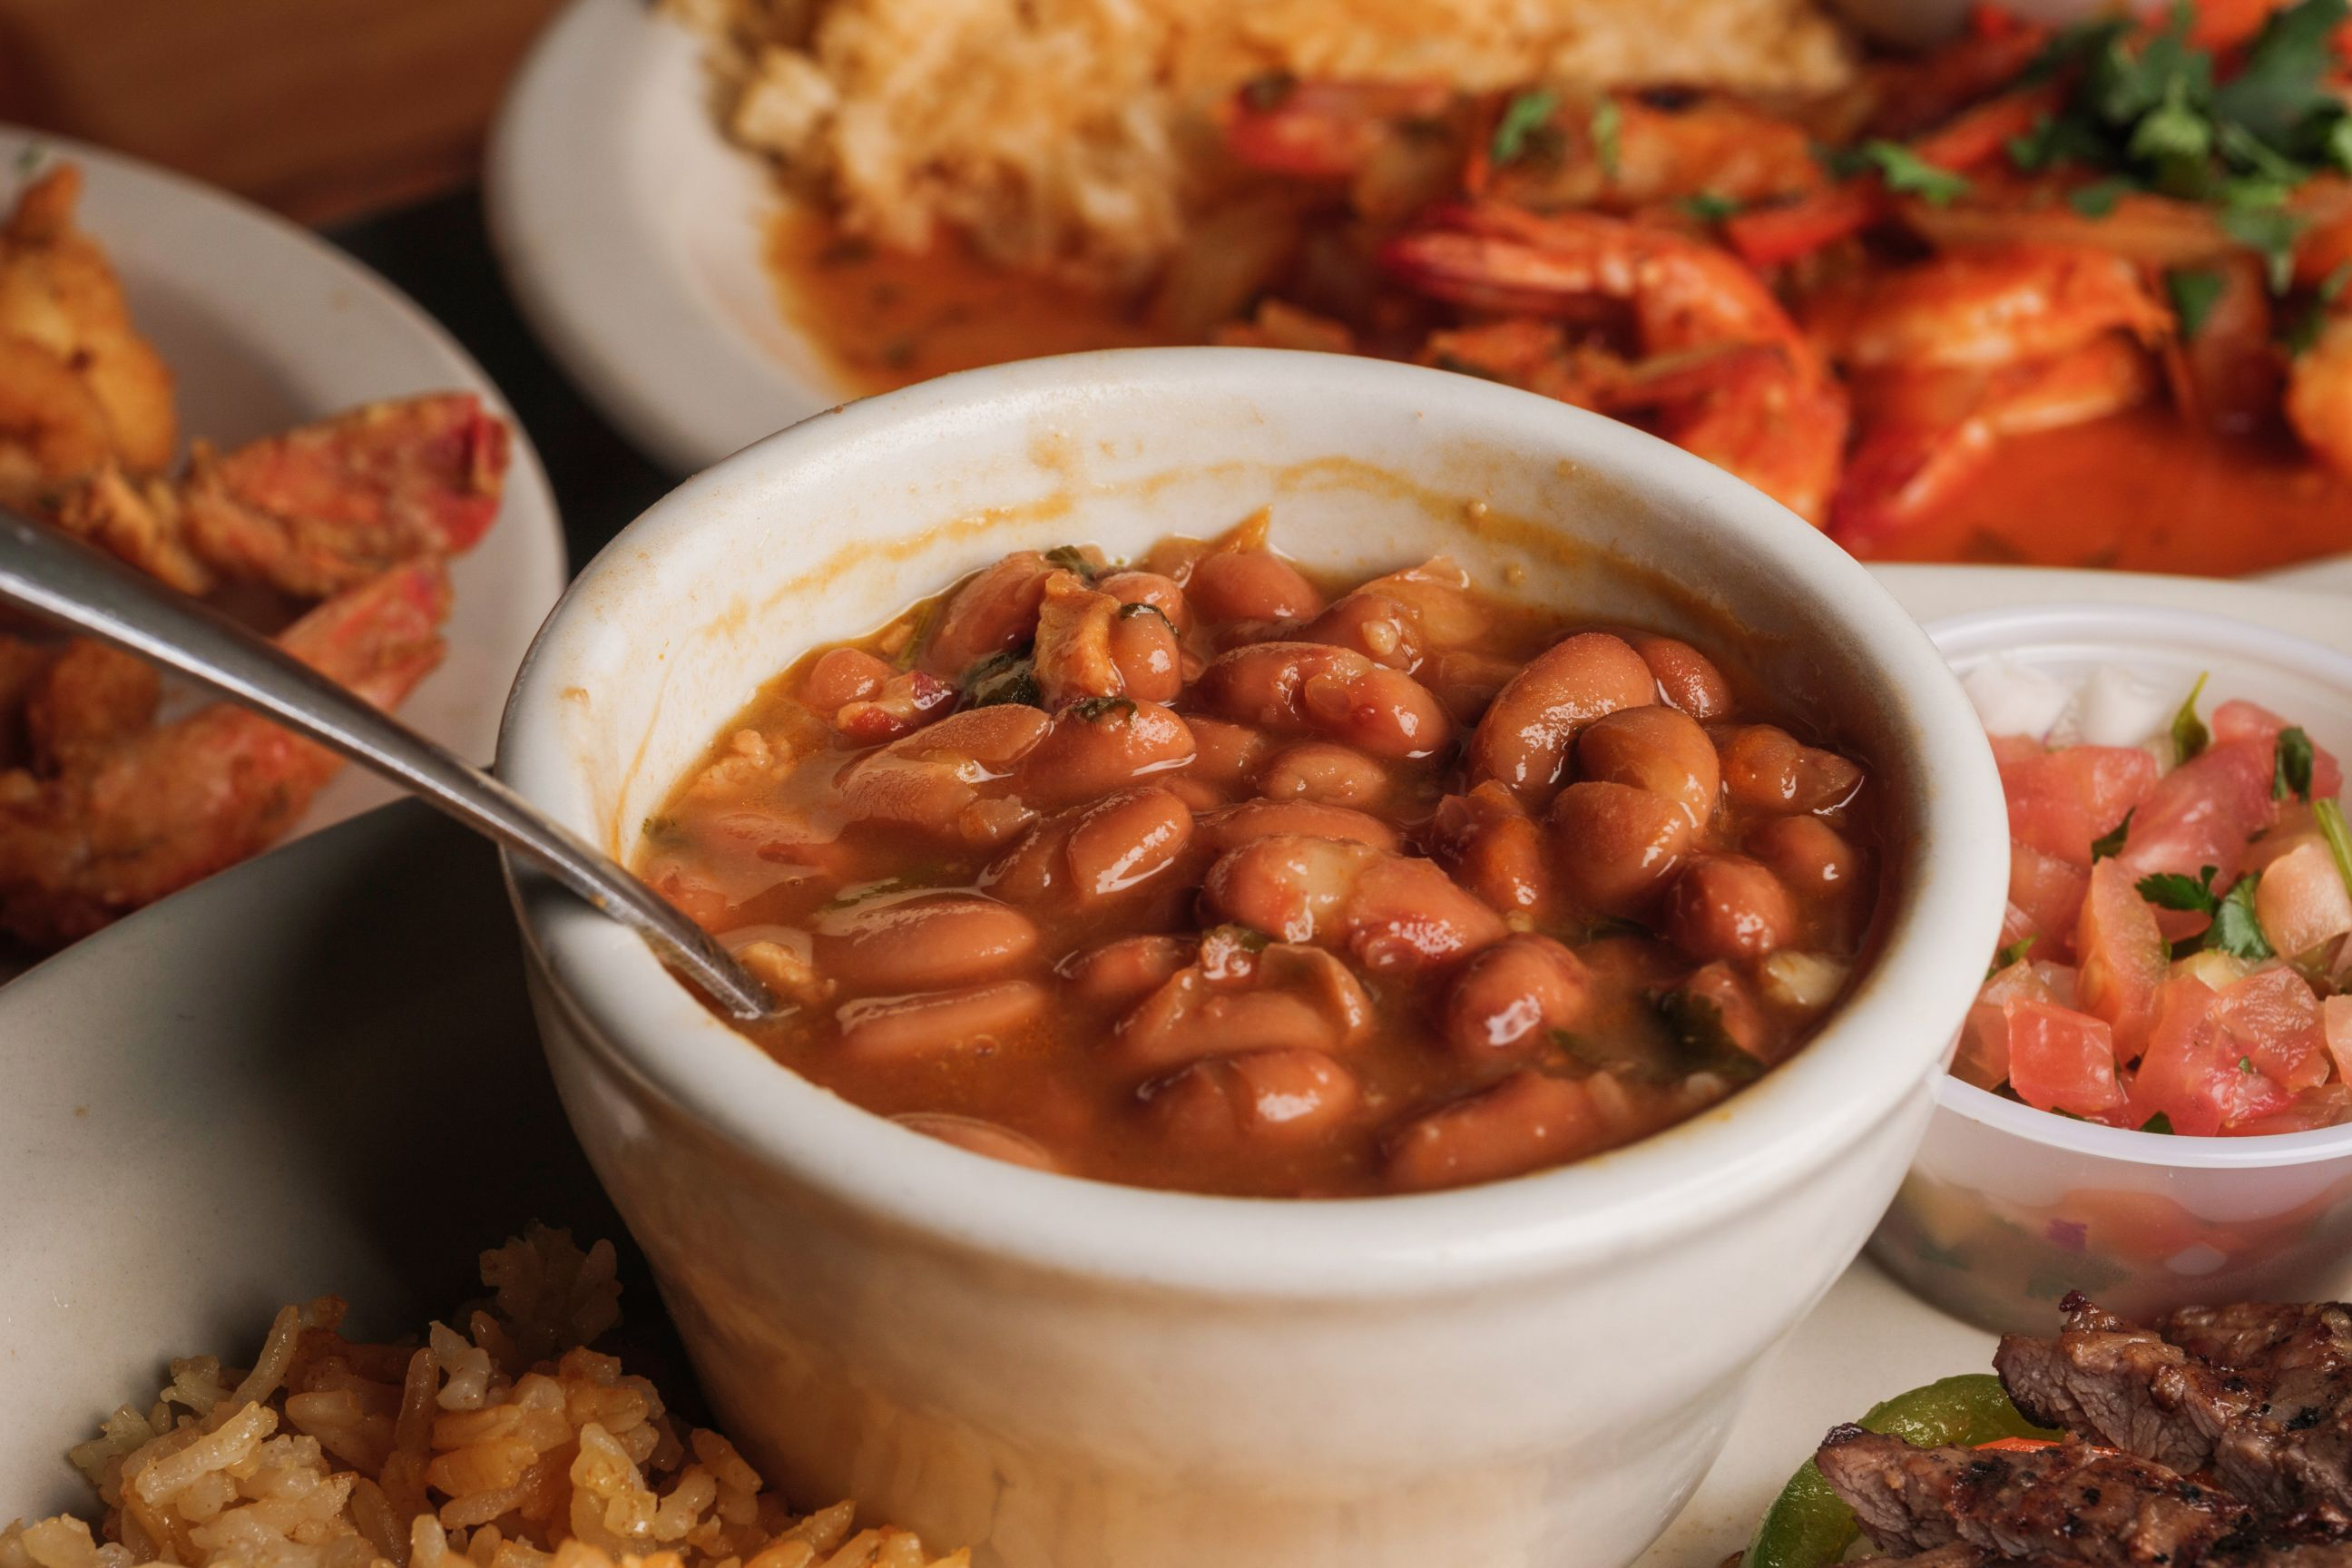 cup of baked beans with other entrees